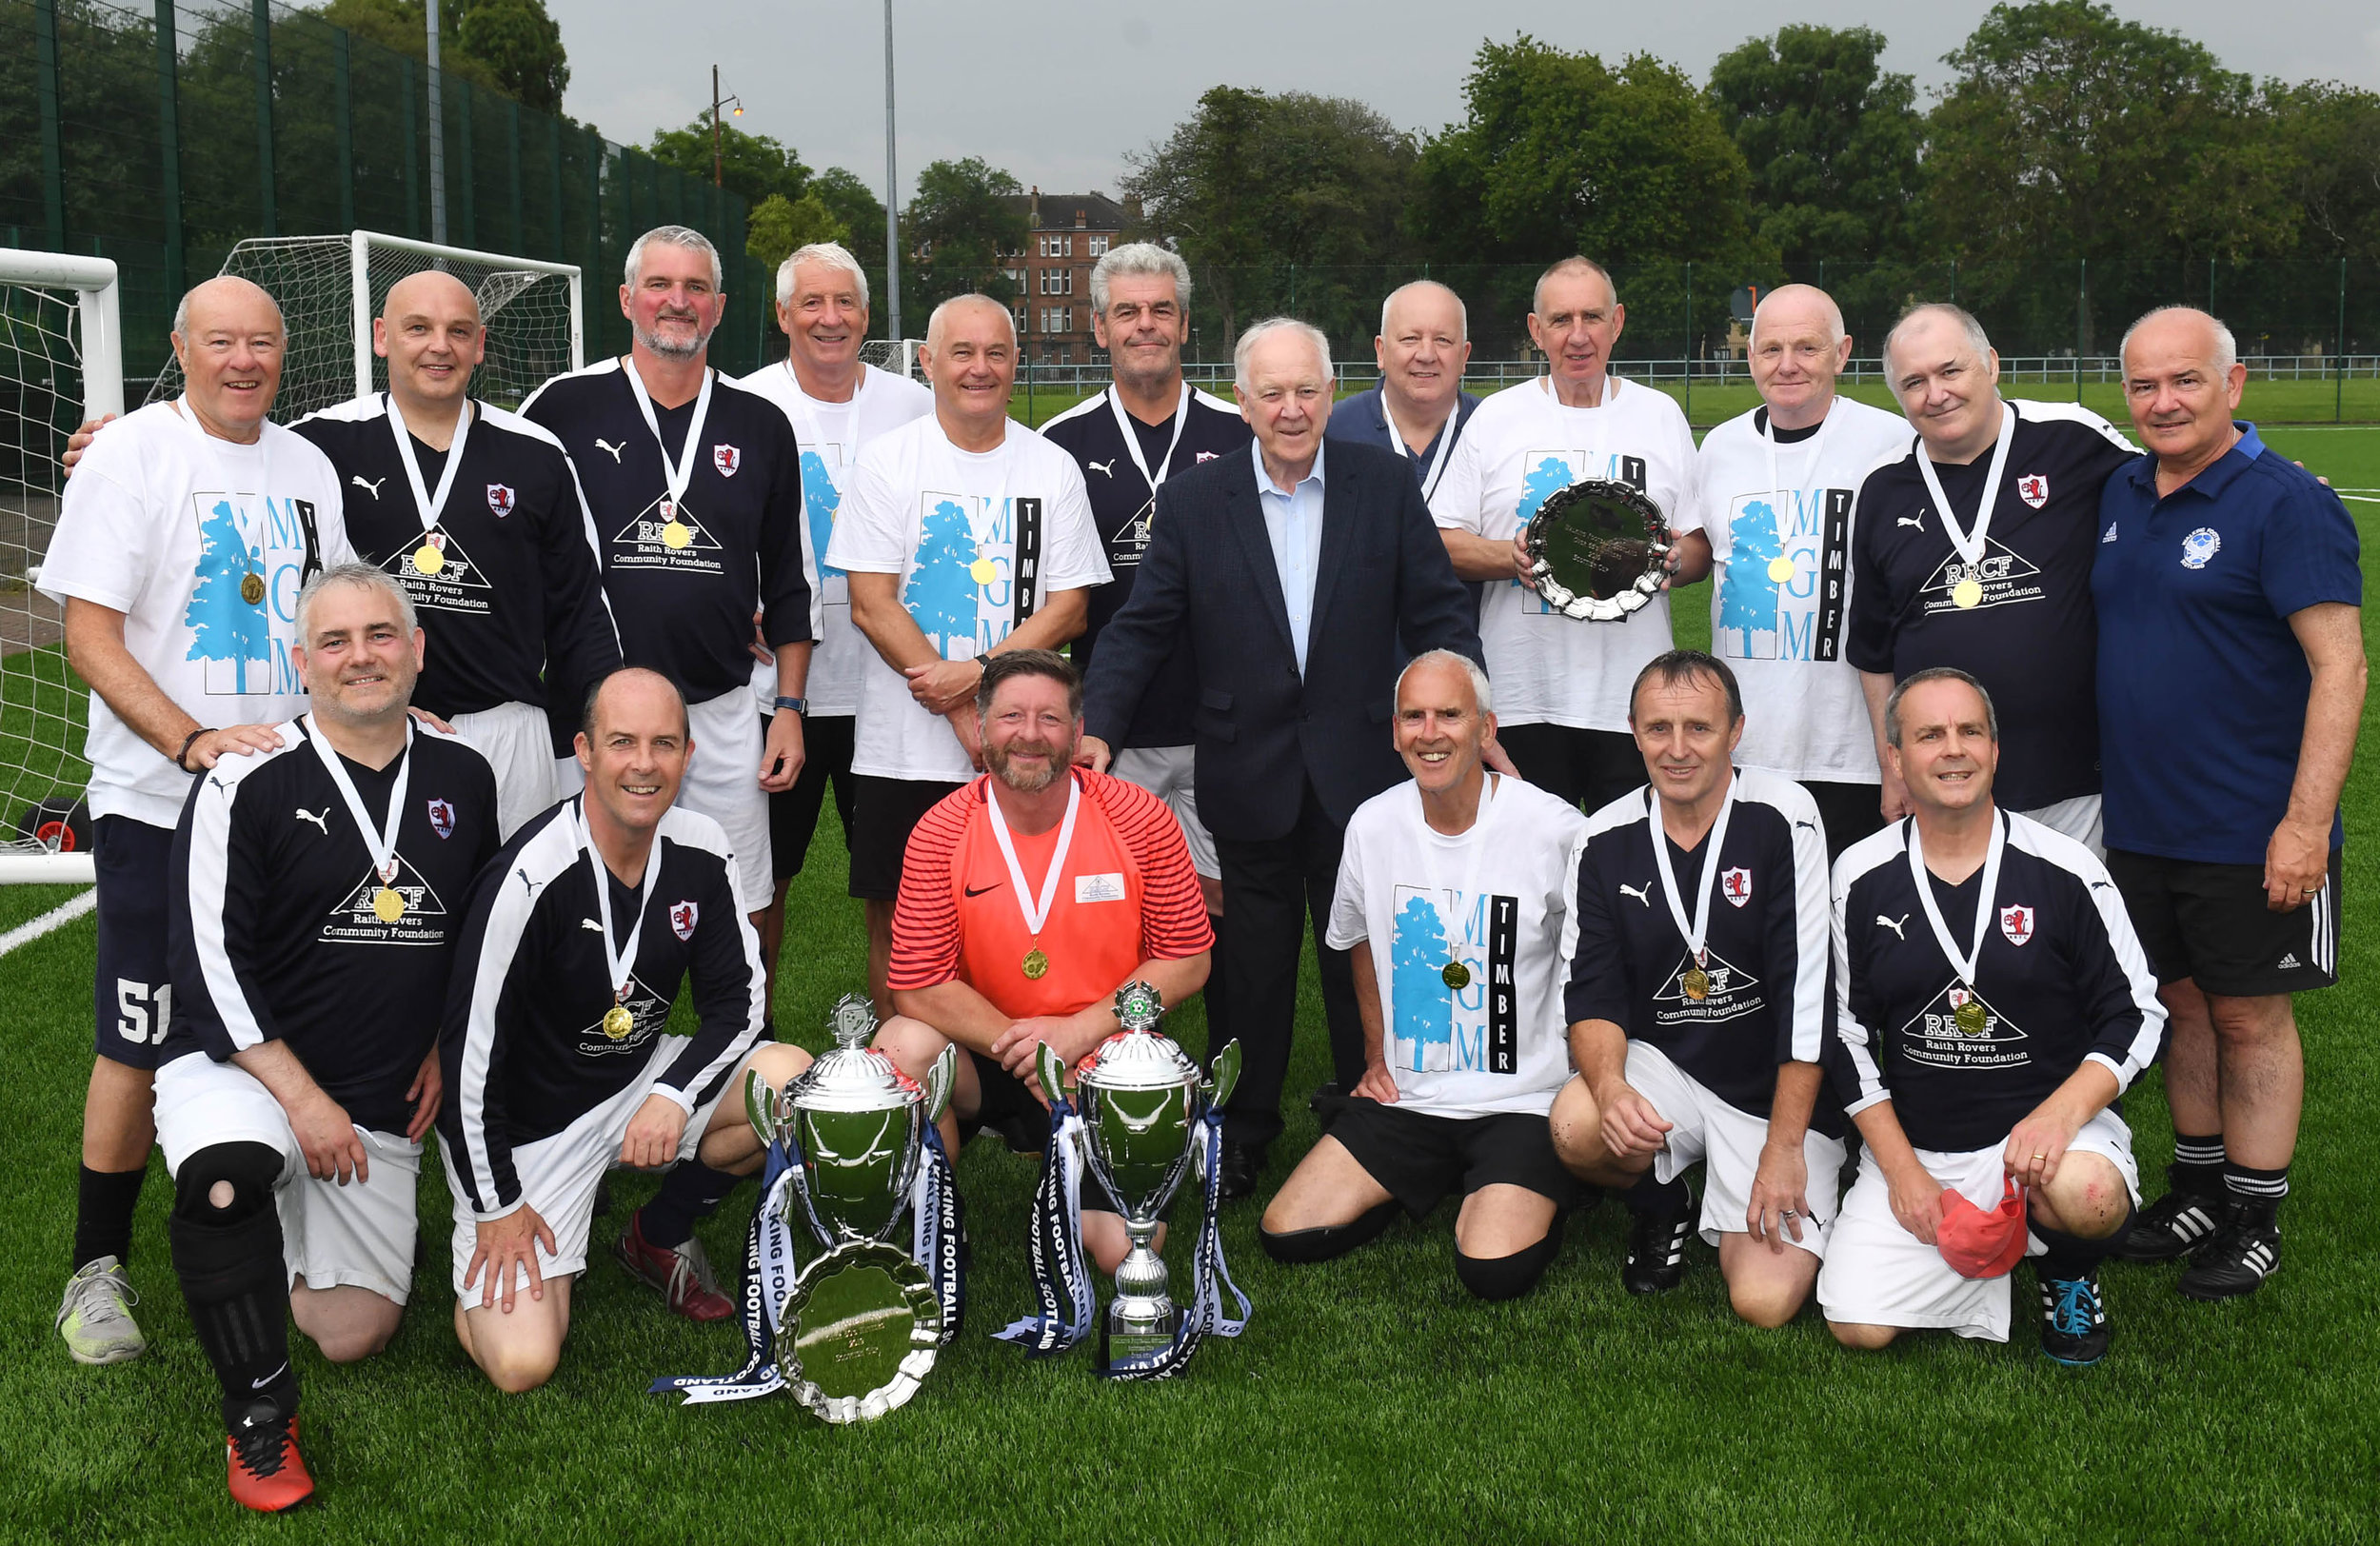 Scottish Champions Over 50's Raith Rovers (Blue) and Over 65's Kirkcaldy (White) with Craig Brown and WFS Chair Gary McLaughlin